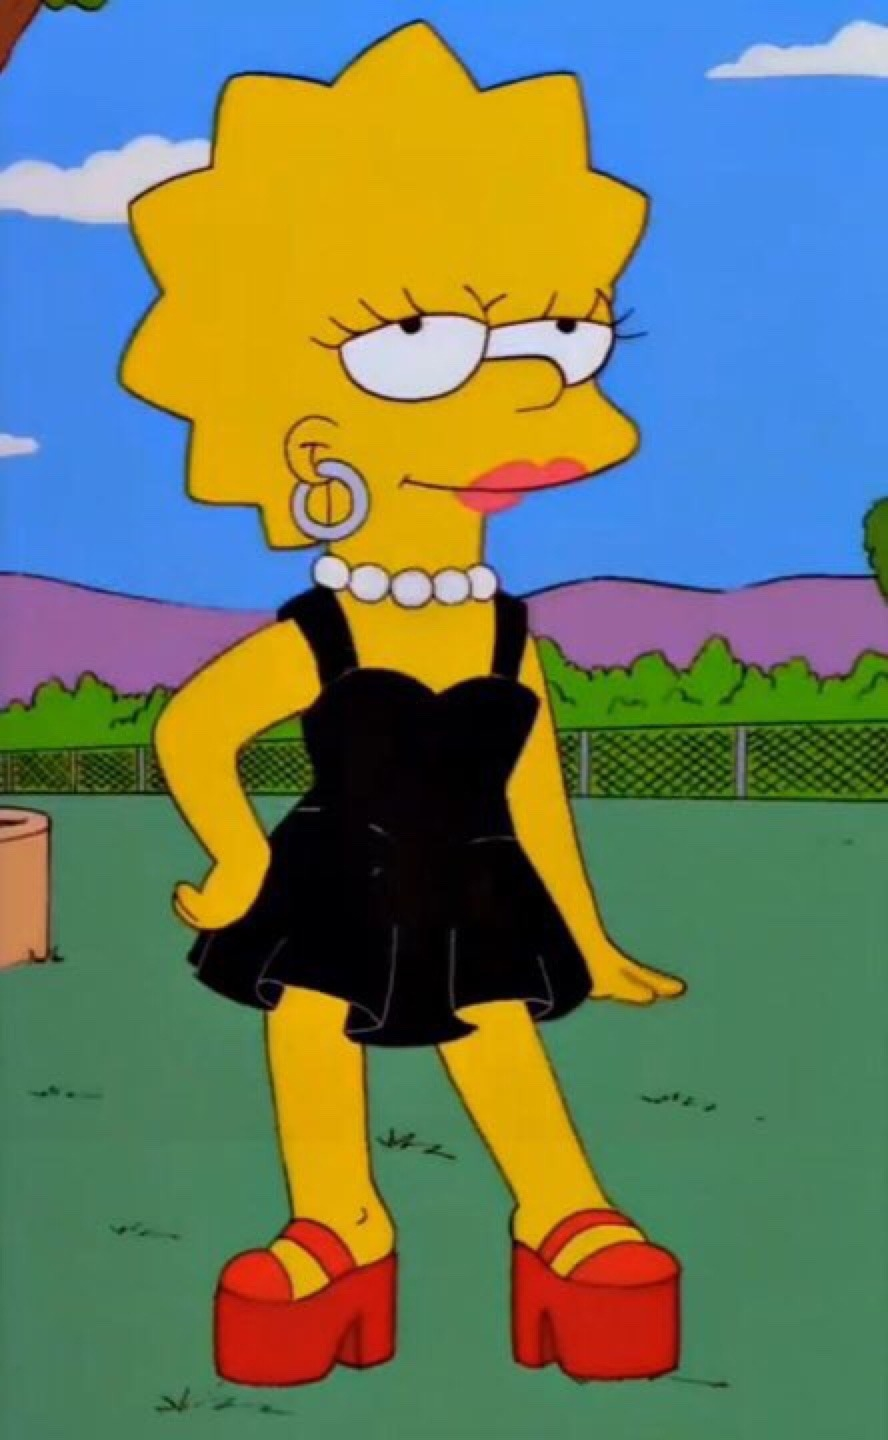 Prostitute Lisa Simpson